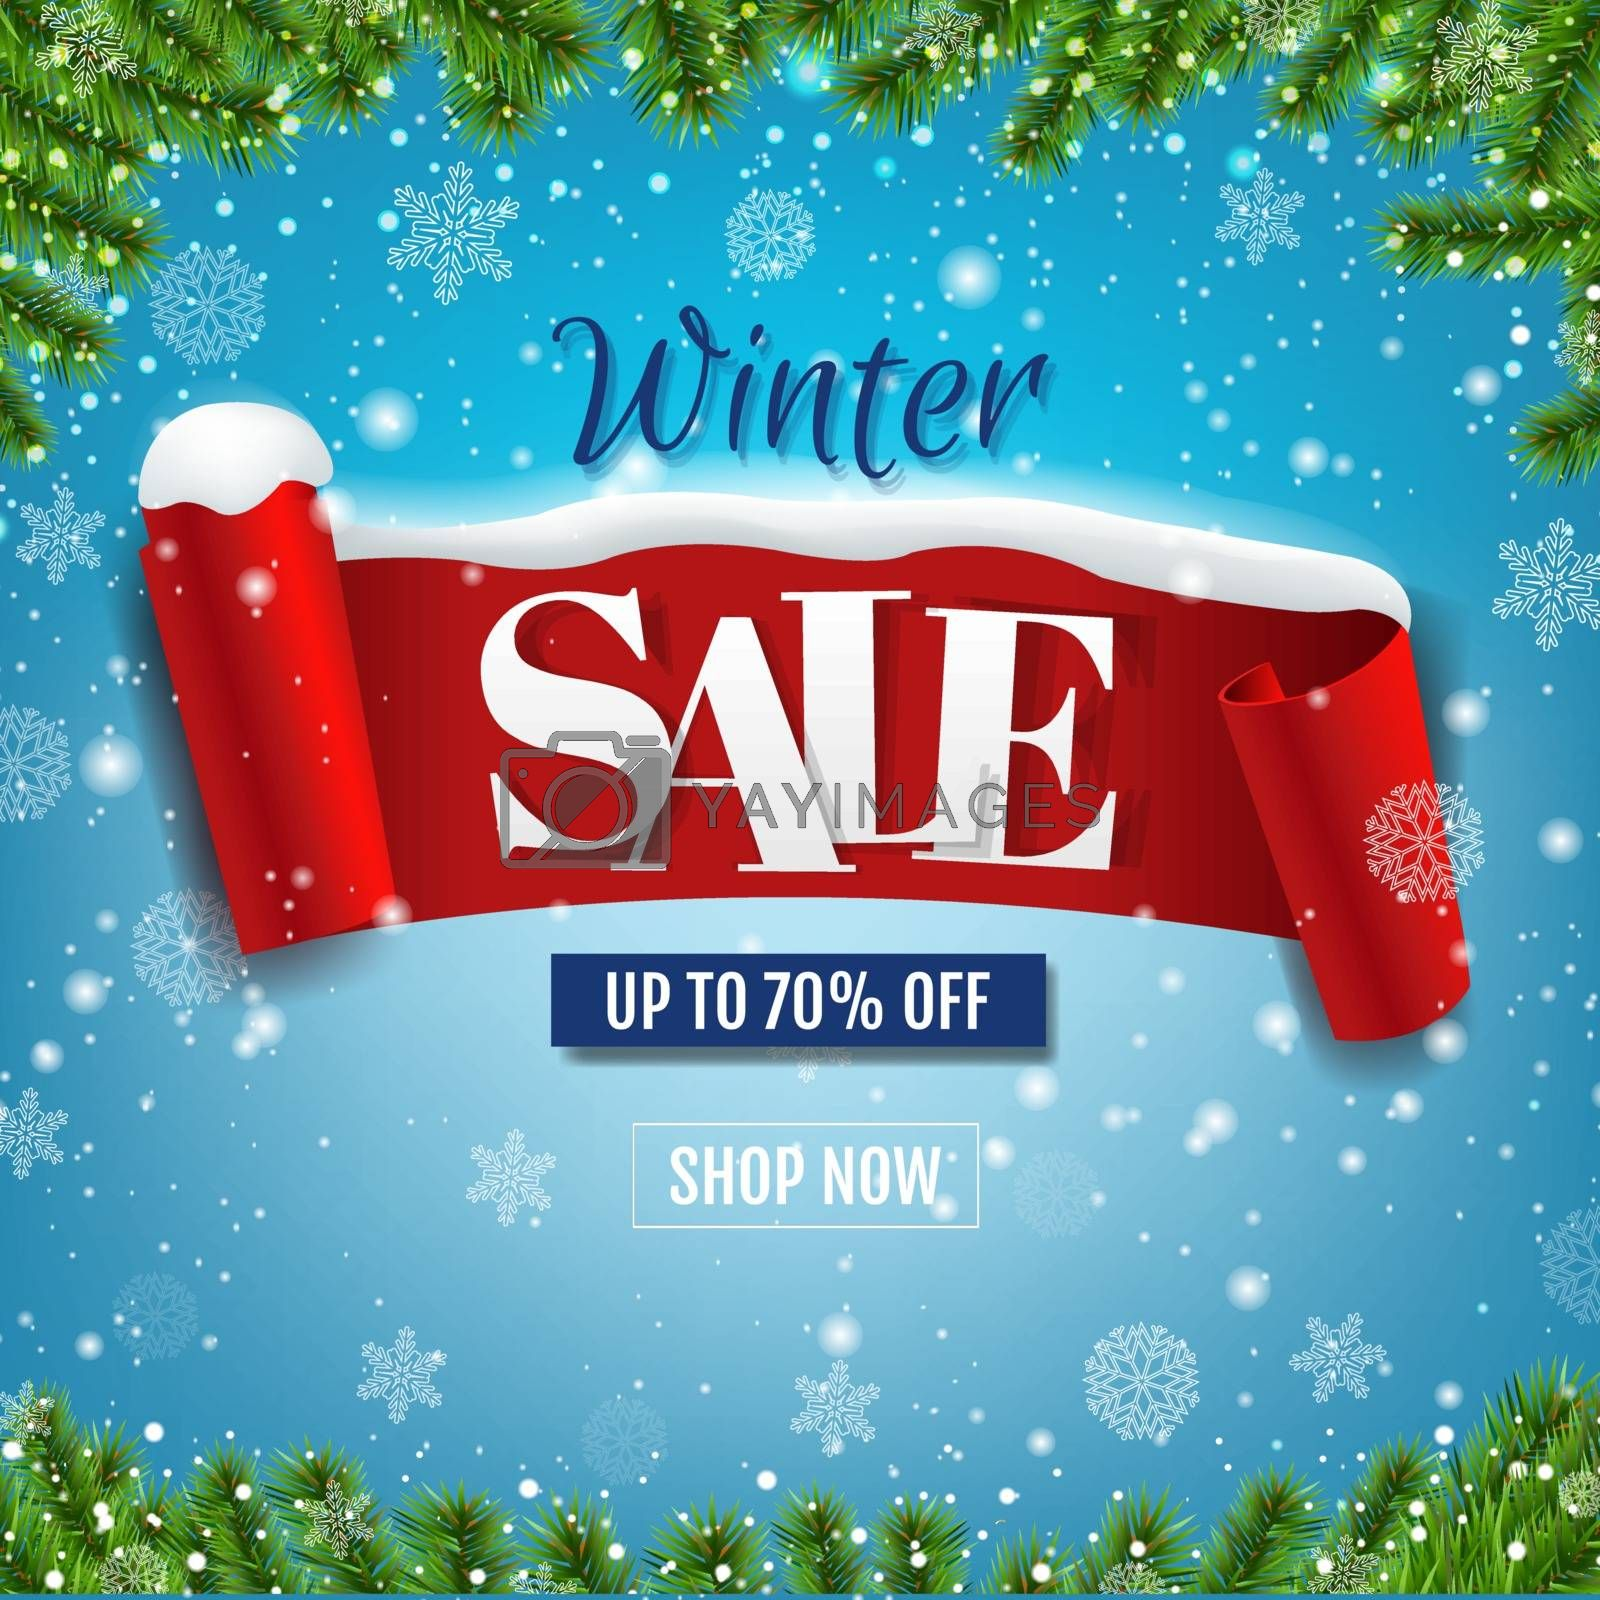 Winter Sale Poster With Red Ribbon With Snow Isolated Blue Background With Gradient Mesh, Vector Illustration